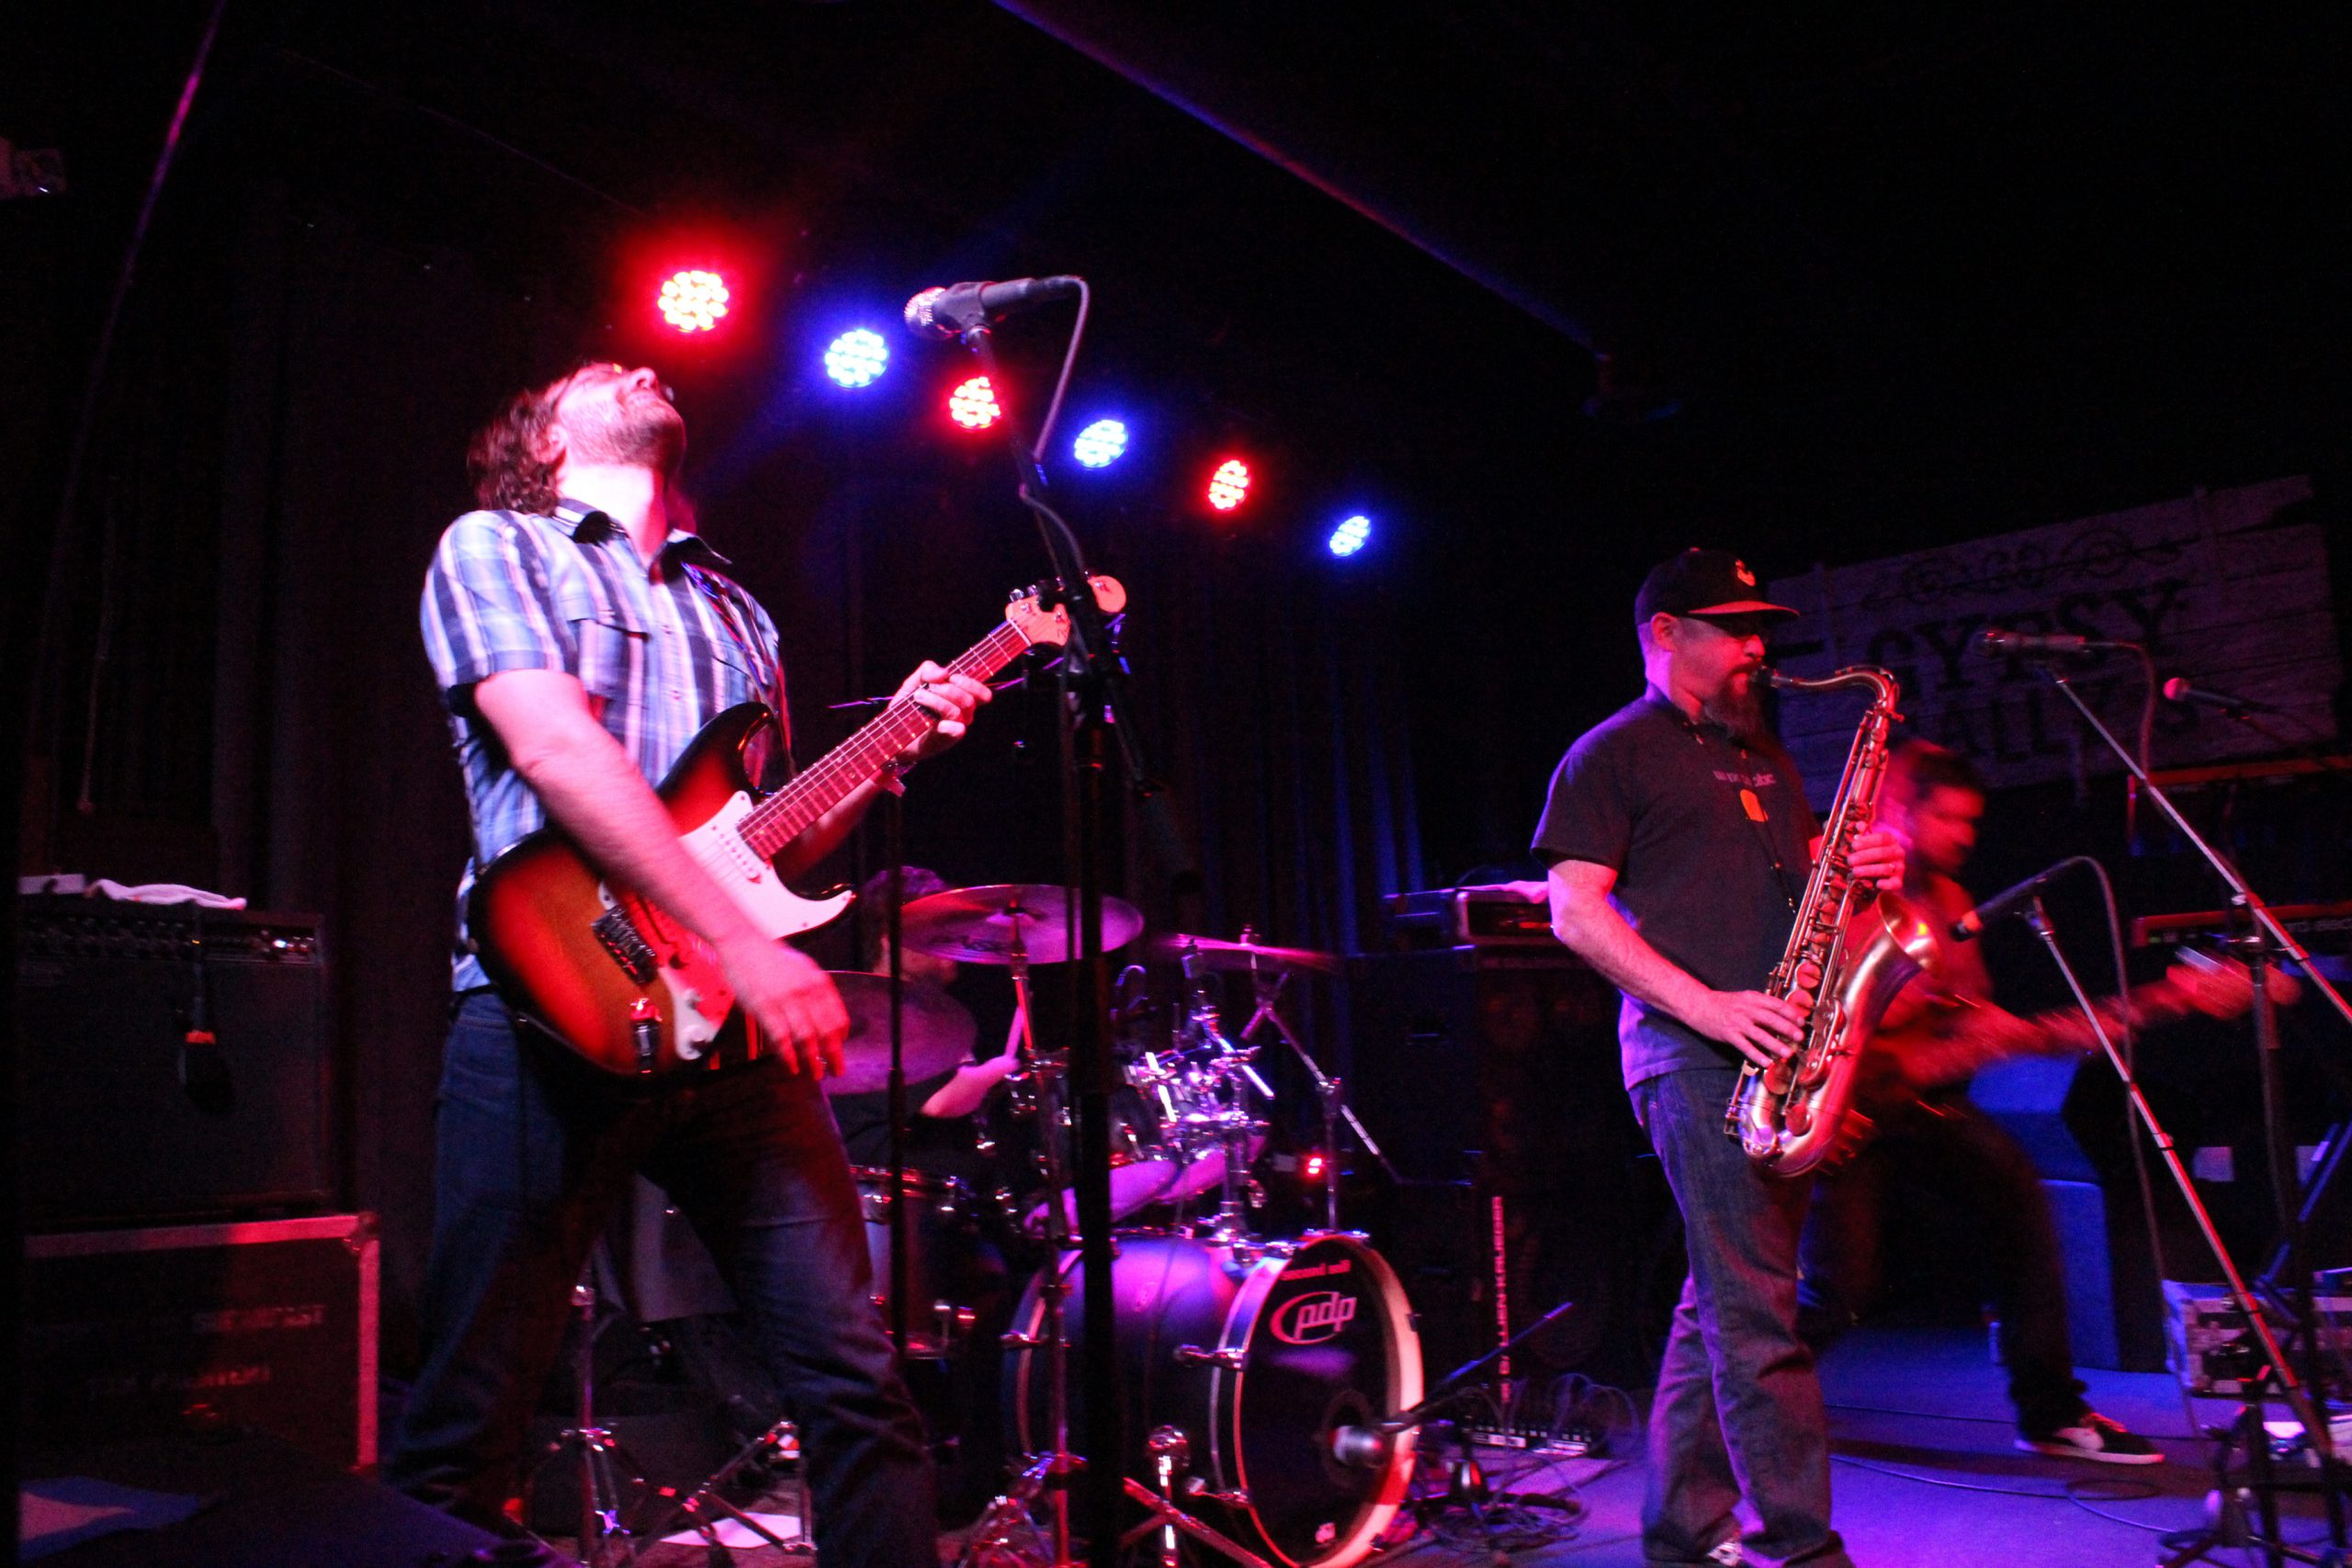 Review of Kung Fu Wednesday April 16 at Gypsy Sally's